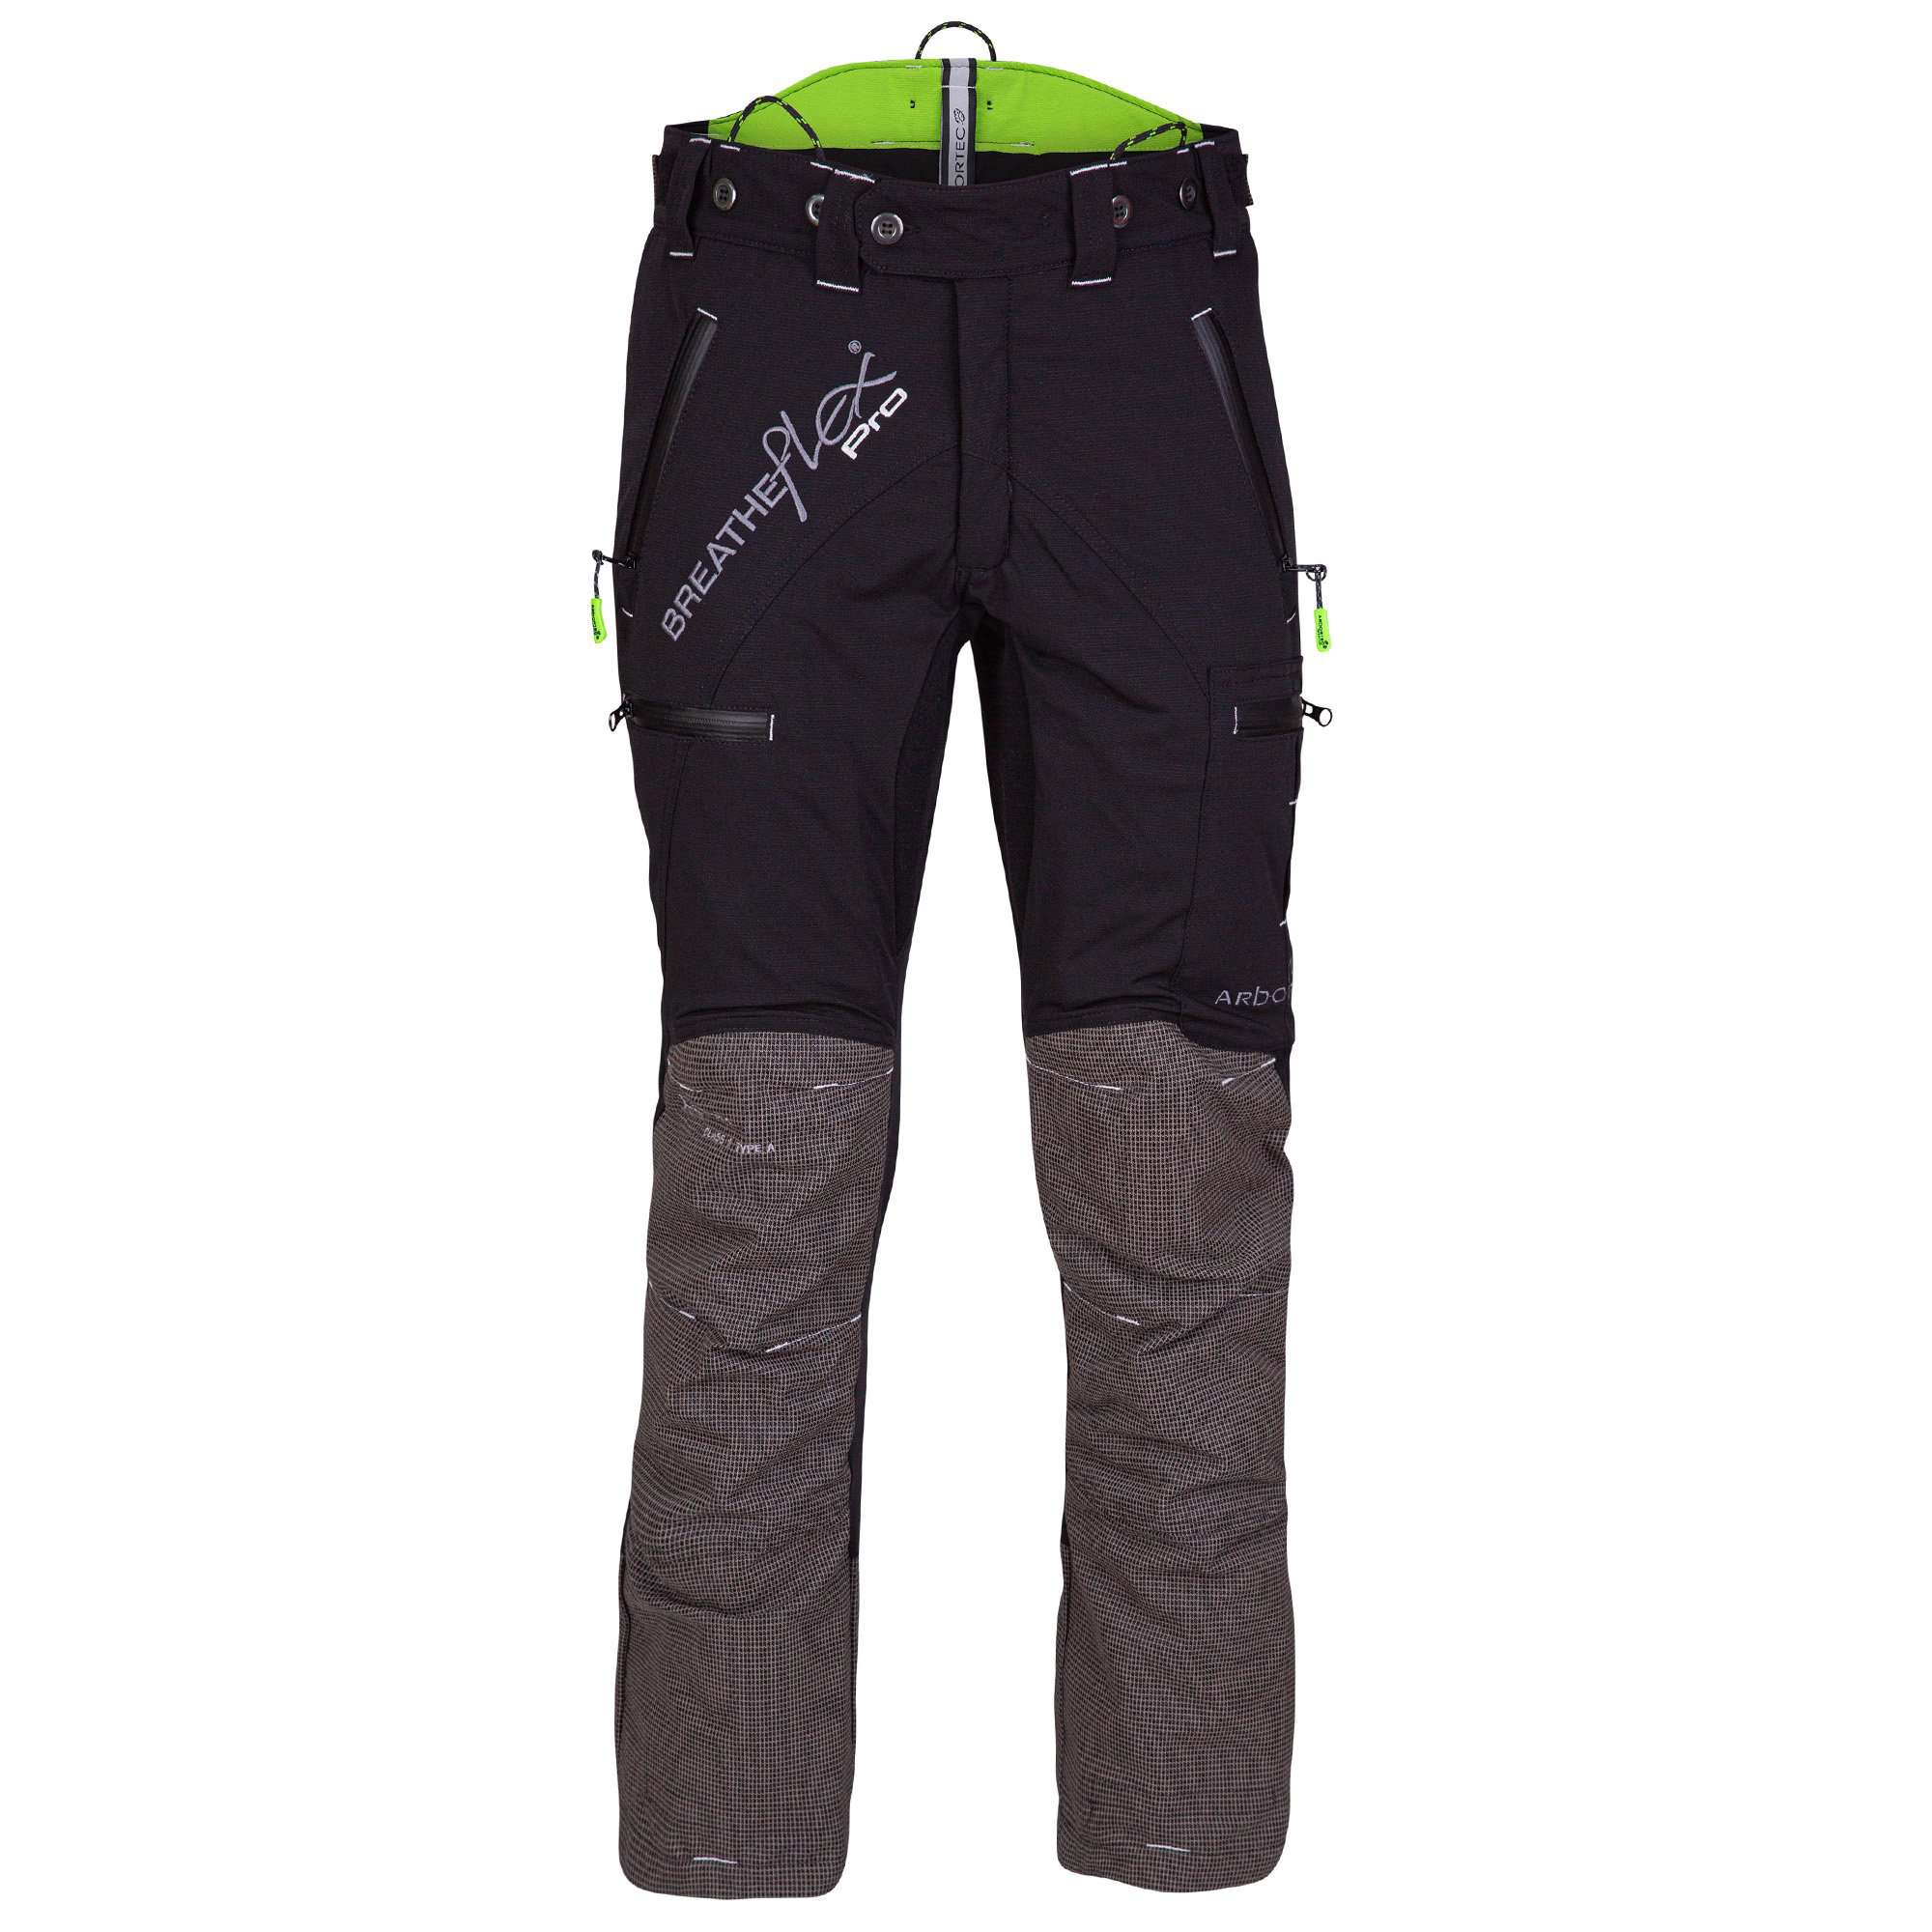 AT4060 Breatheflex Pro Type A Class 1 Chainsaw Trousers - Black - Arbortec Forestwear